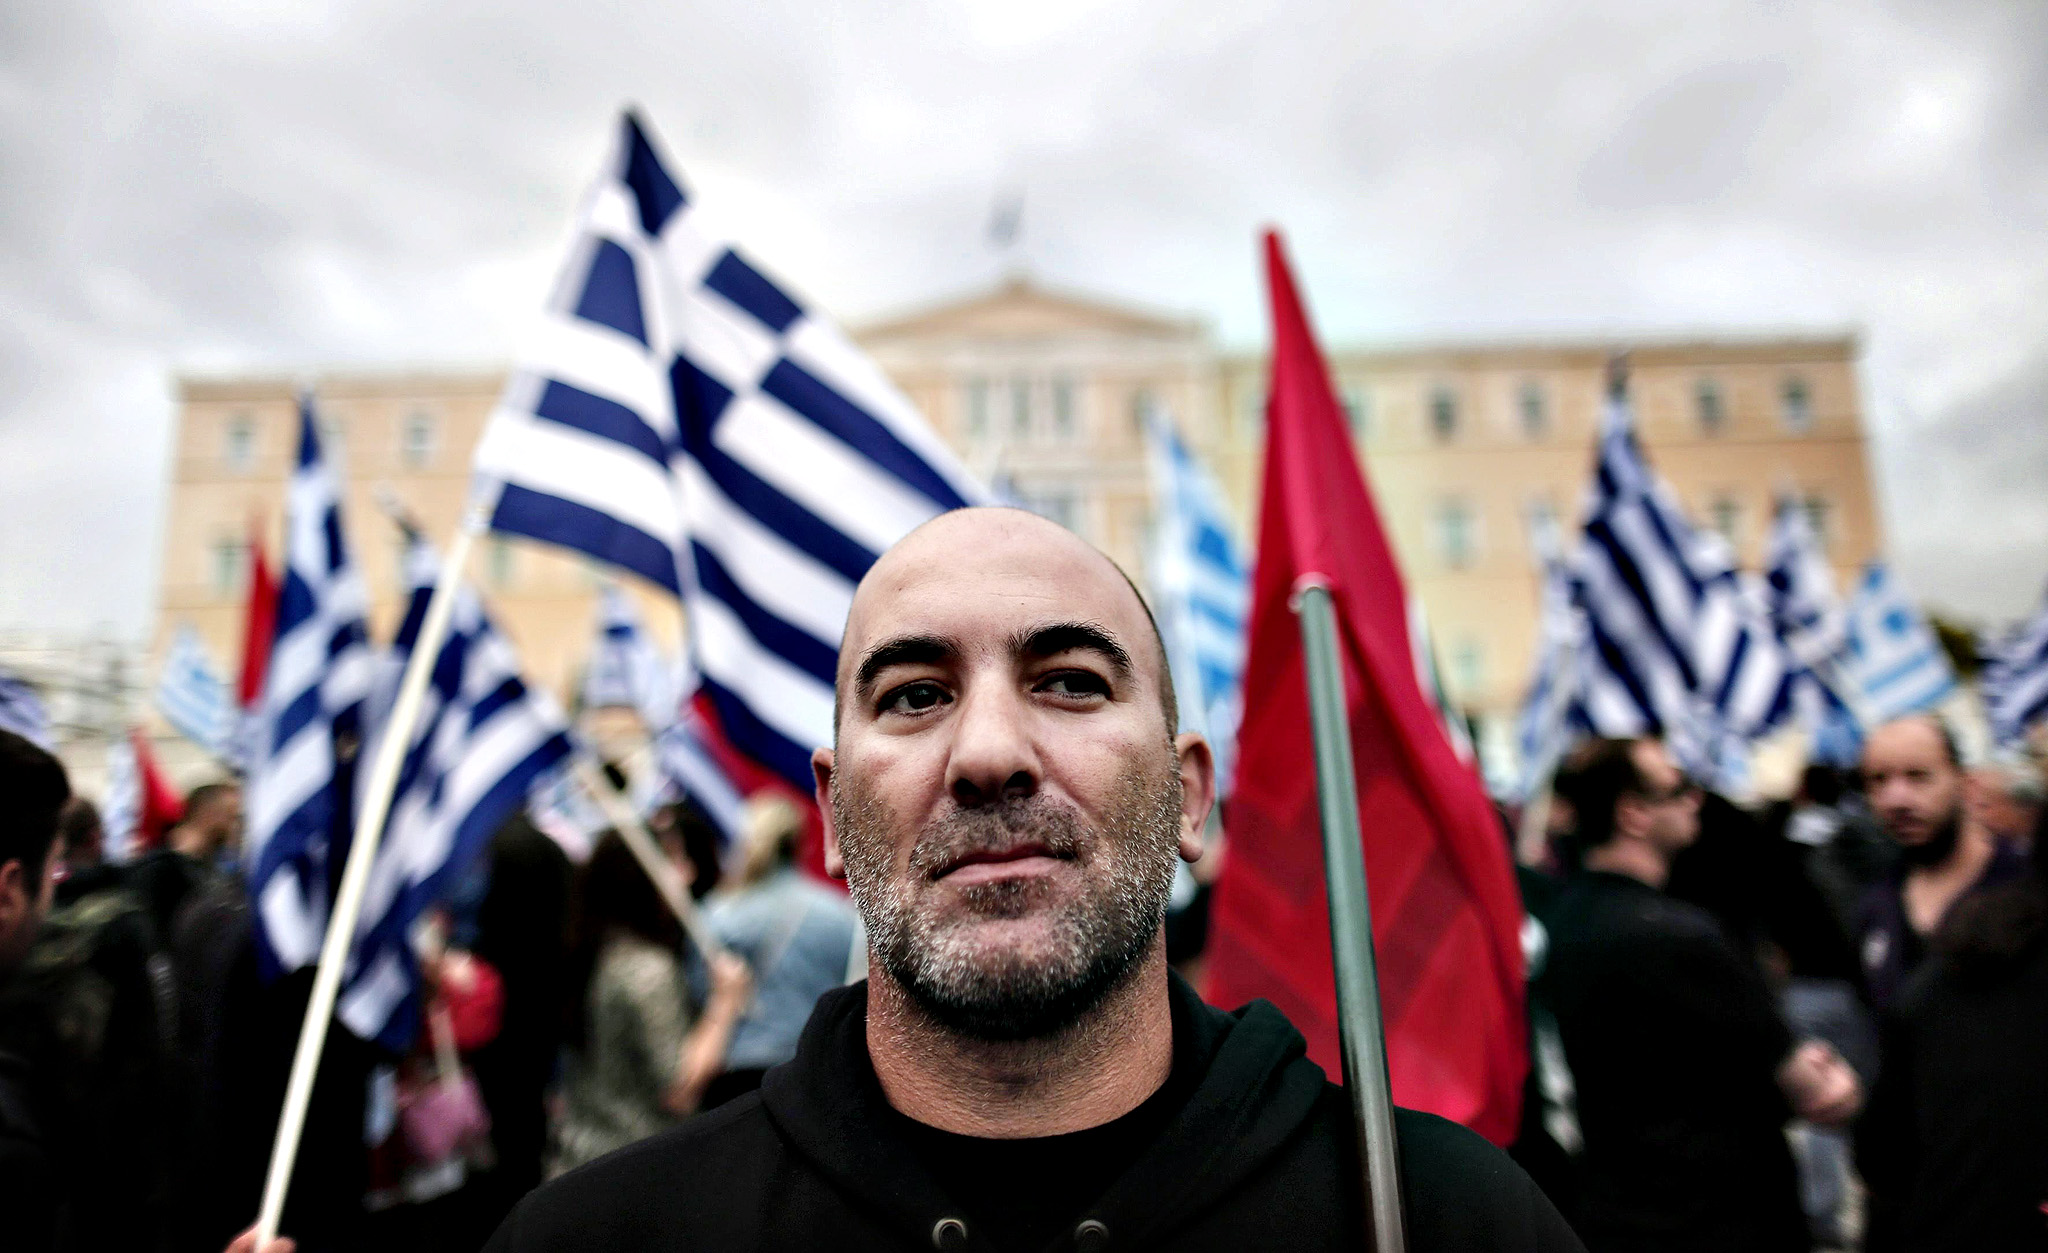 Far-right Golden Dawn party supporters demonstrate in front of the Parliament before a vote that will decide whether the deputies of the party will be stripped of their immunity from prosecution, in Athens, Greece, 04 June 2014. The members of Parliament (MP) of the Golden Dawn party are being charged for their alleged participation and leading of a criminal organization